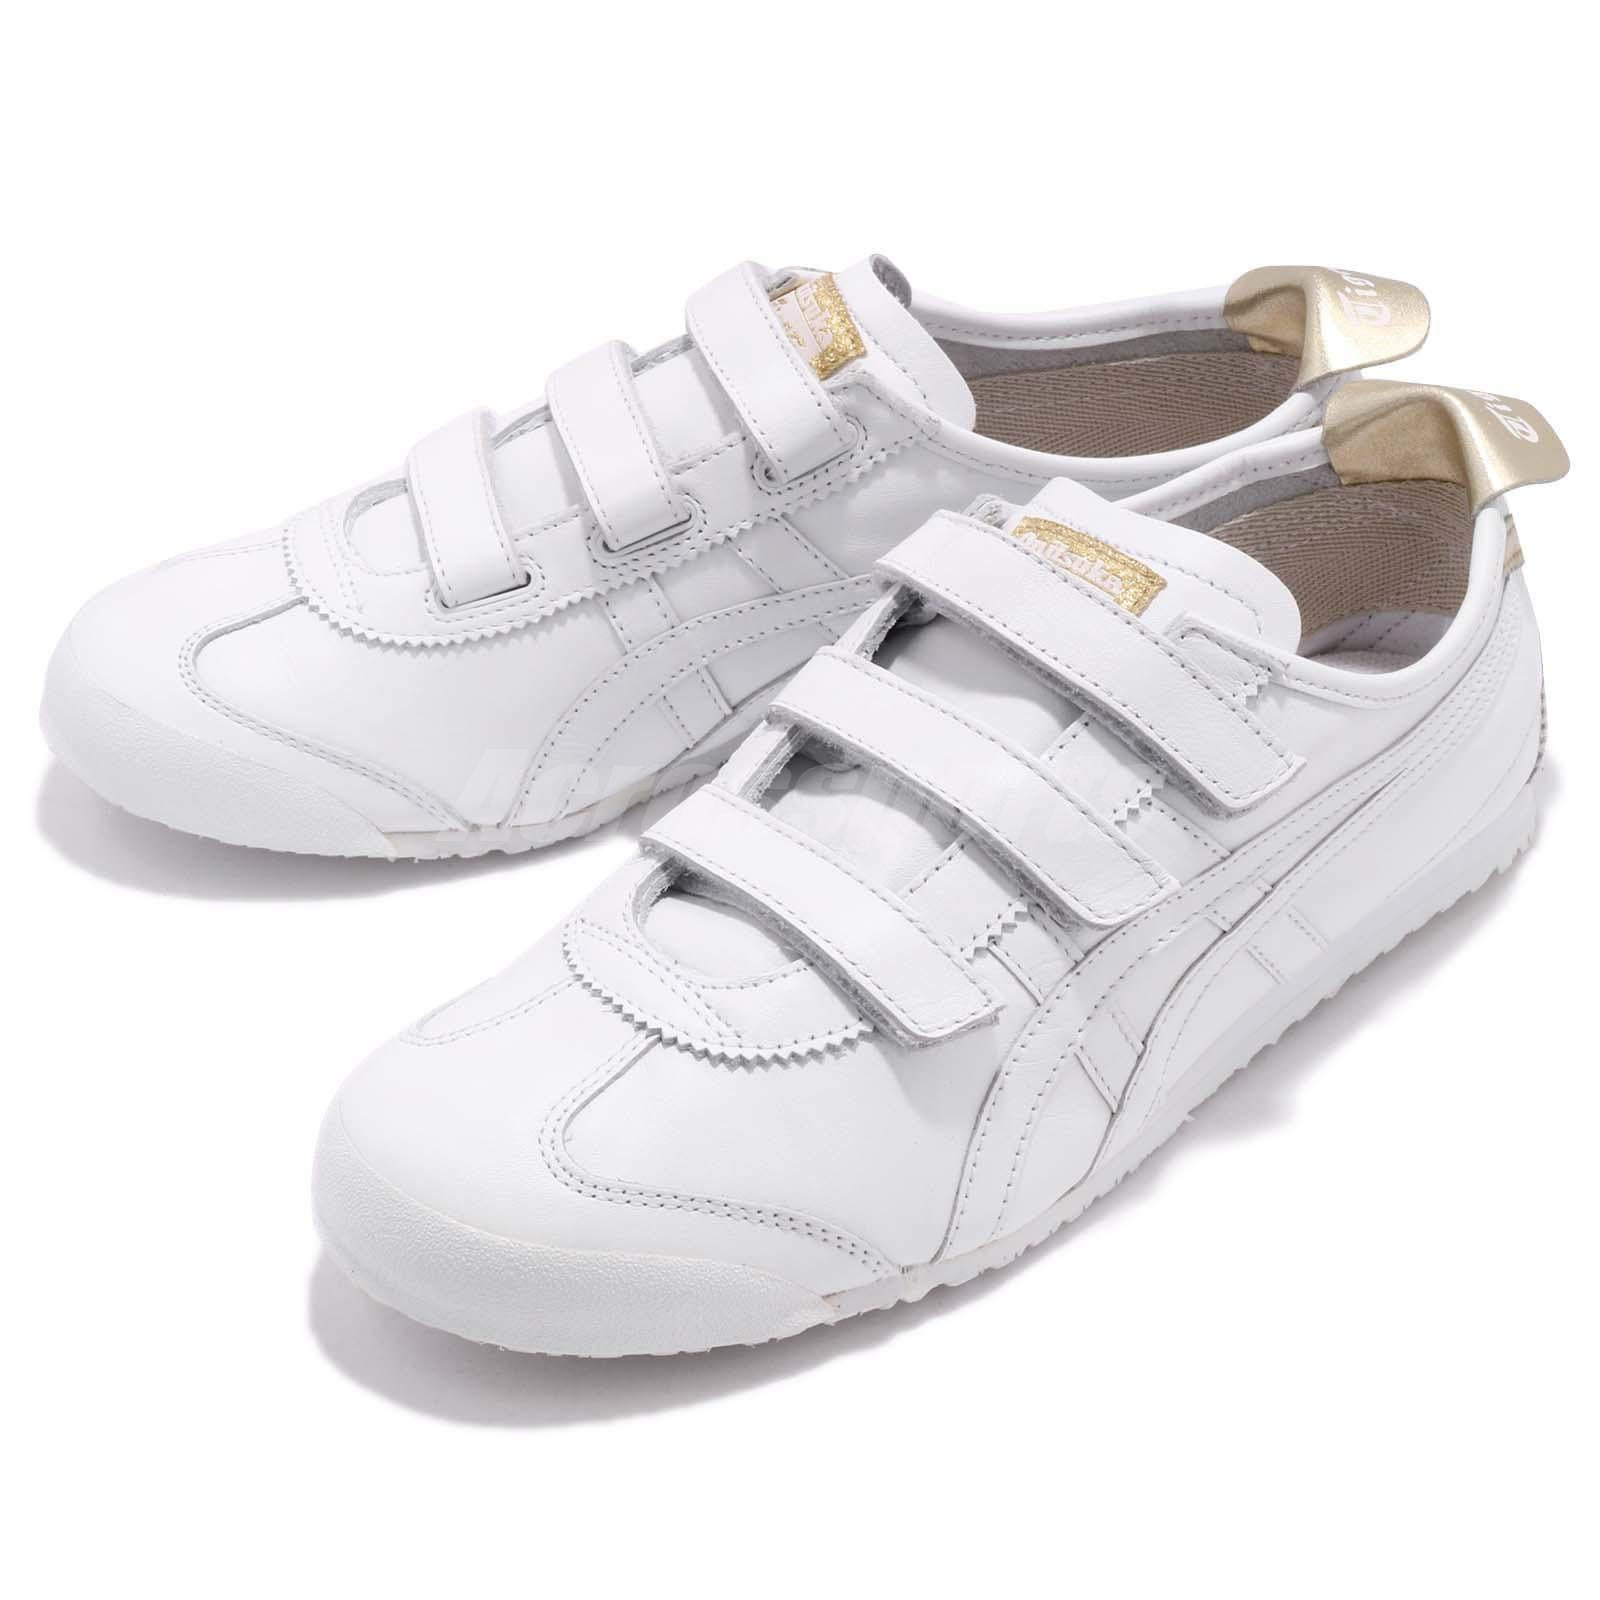 new style 64104 8caf3 Details about Asics Onitsuka Tiger Mexico 66 Baja Strap White Gold Men Shoe  Sneaker HK4A1-0194